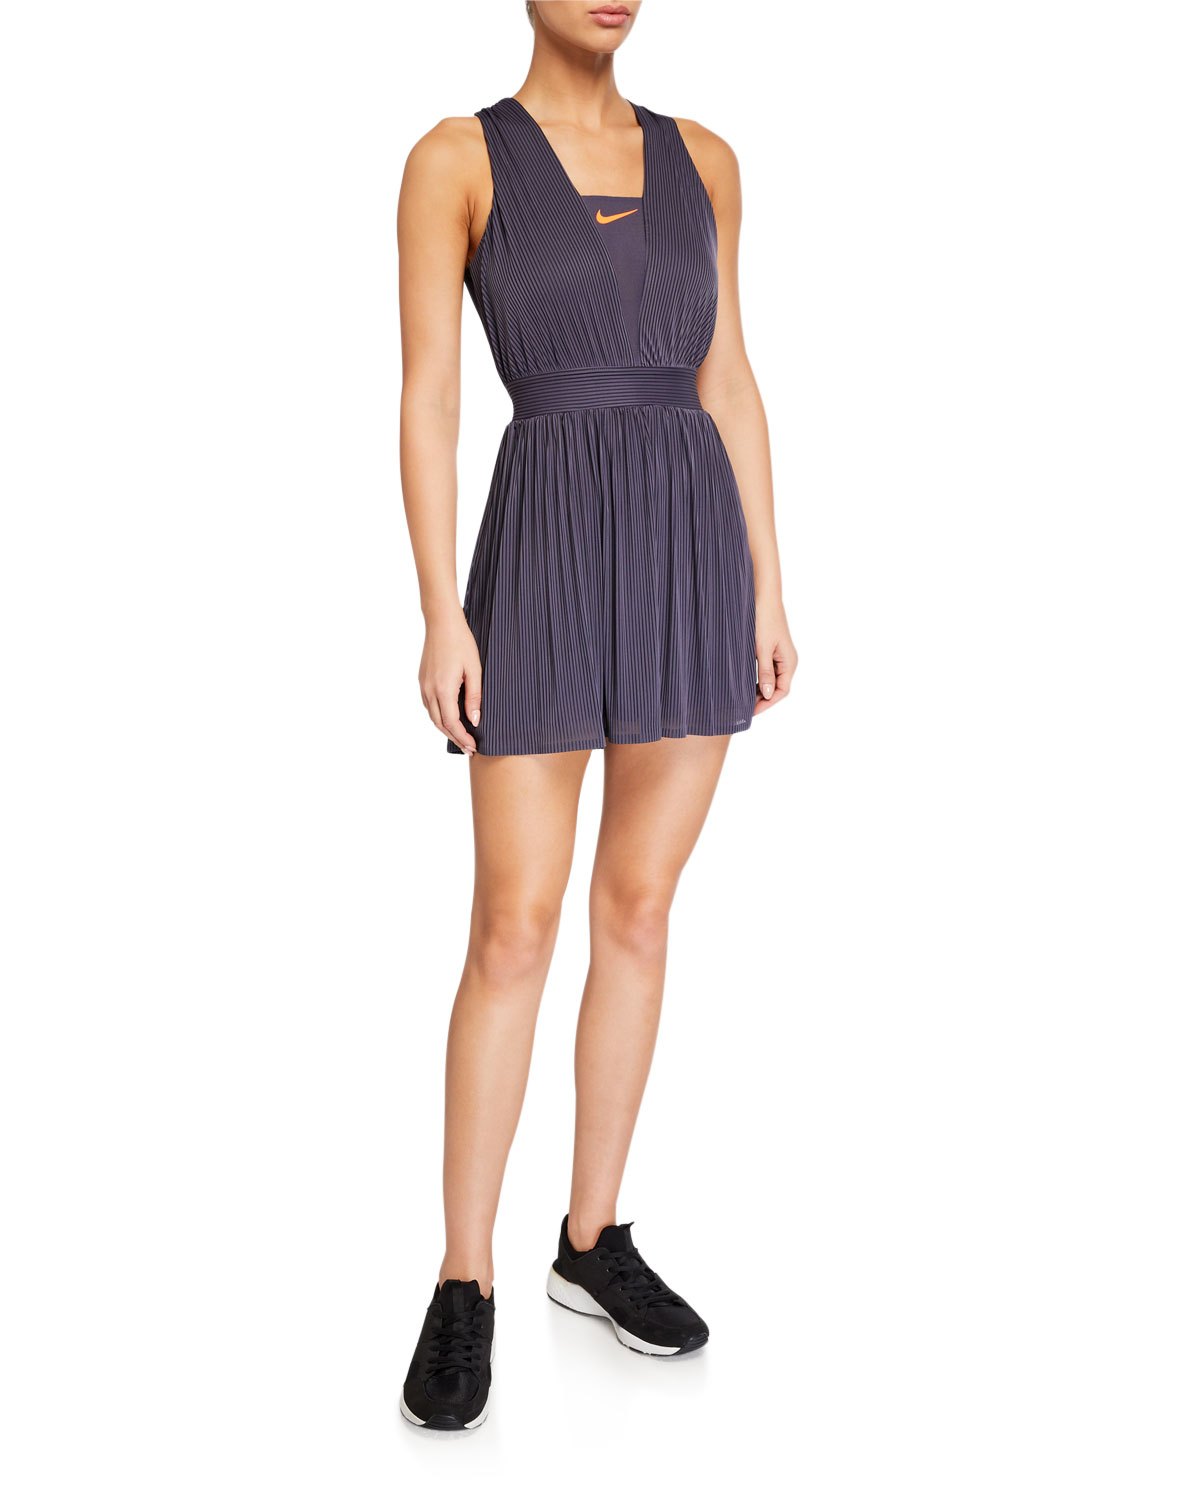 X Maria Sharapova Nikecourt Dri Fit Tennis Dress